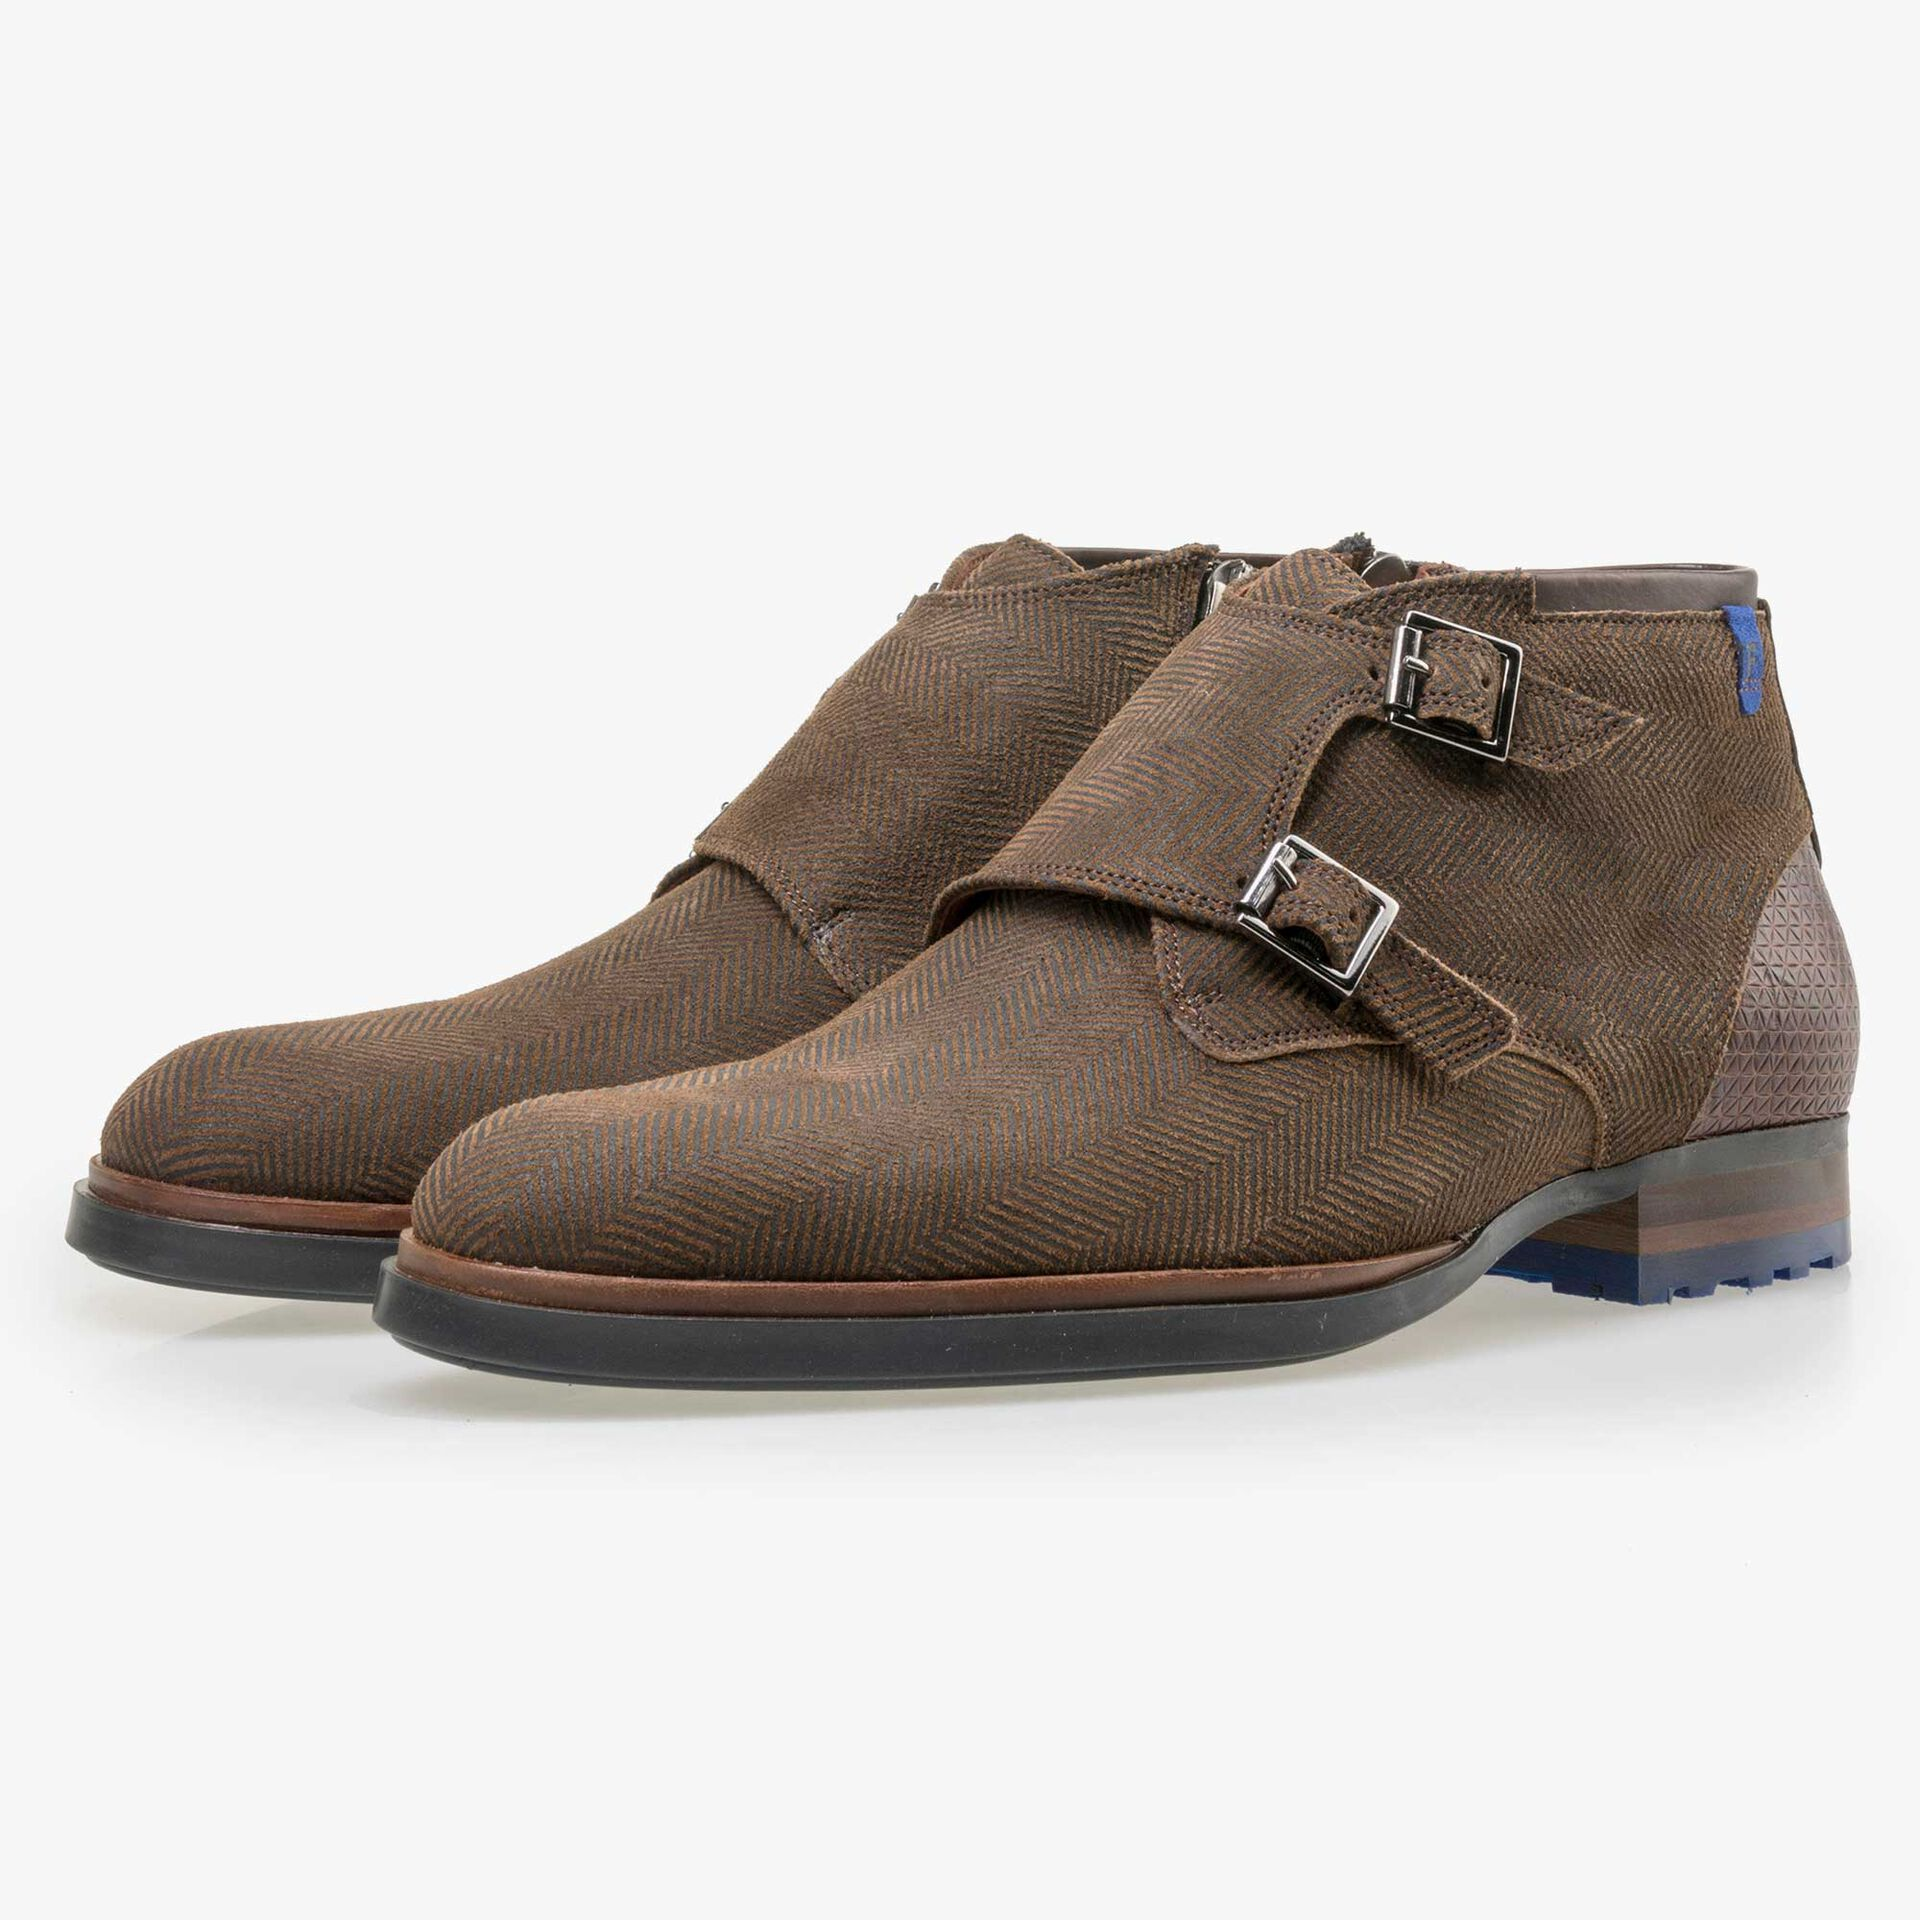 Floris van Bommel men's  brown suede leather zip boot